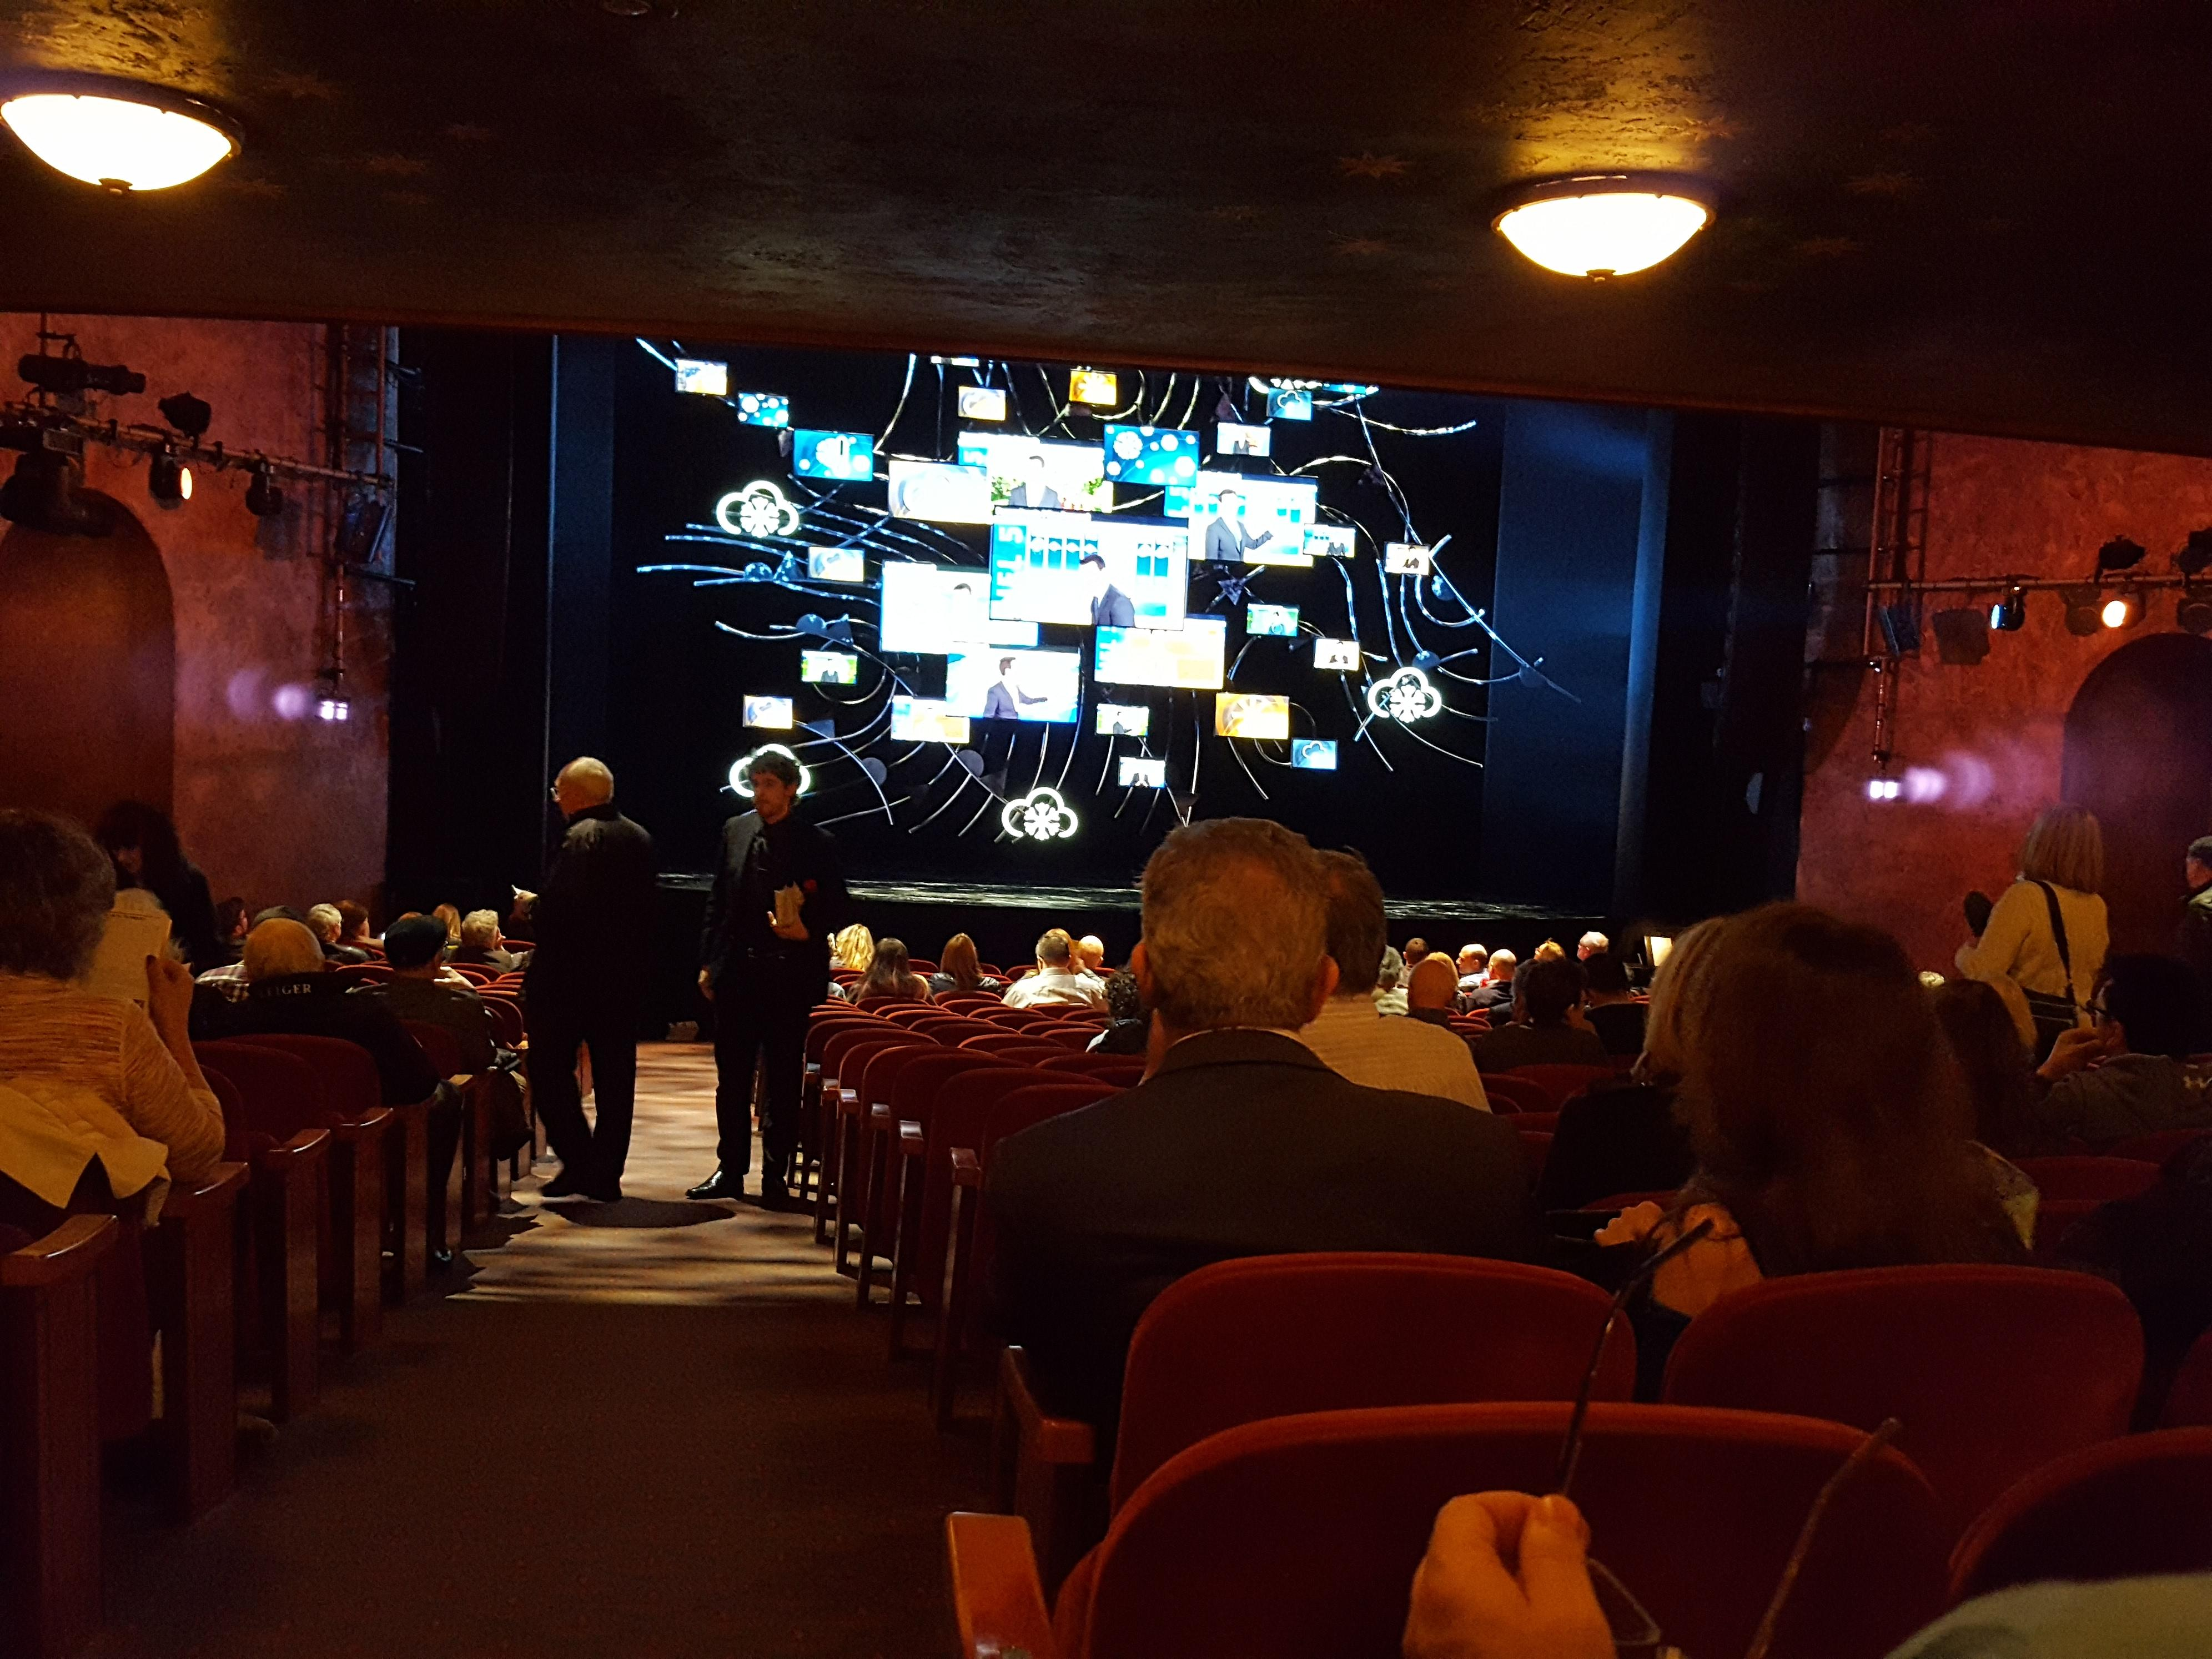 August Wilson Theatre Section Orchestra C Row W Seat 118